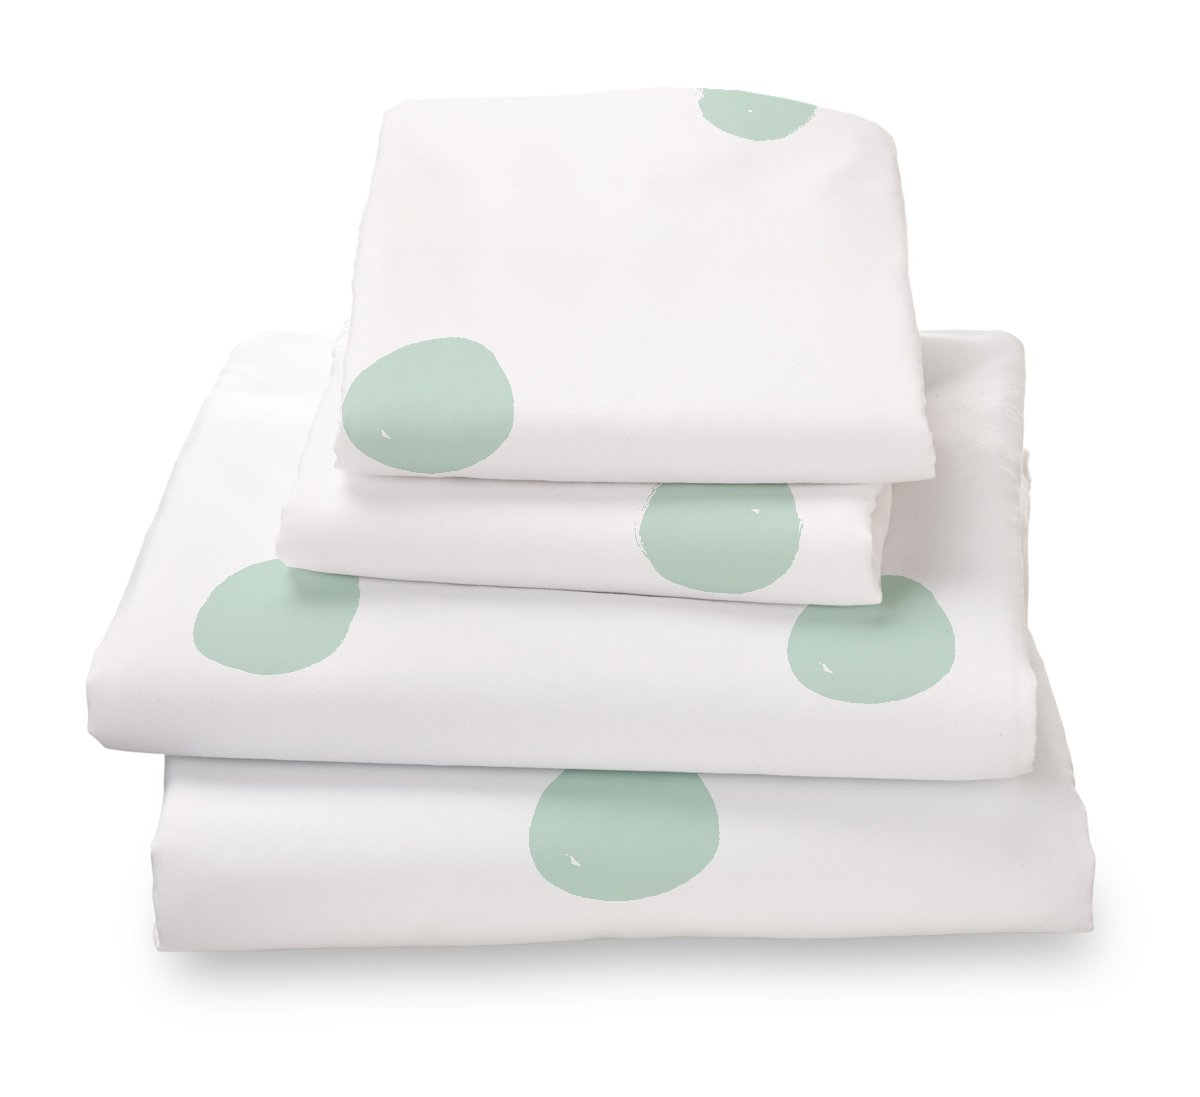 Seafoam Green Polka Dot Twin Size Sheet Set, Soft Sheets for Deep Mattresses, 3 Piece Twin Size Set in White and Mint